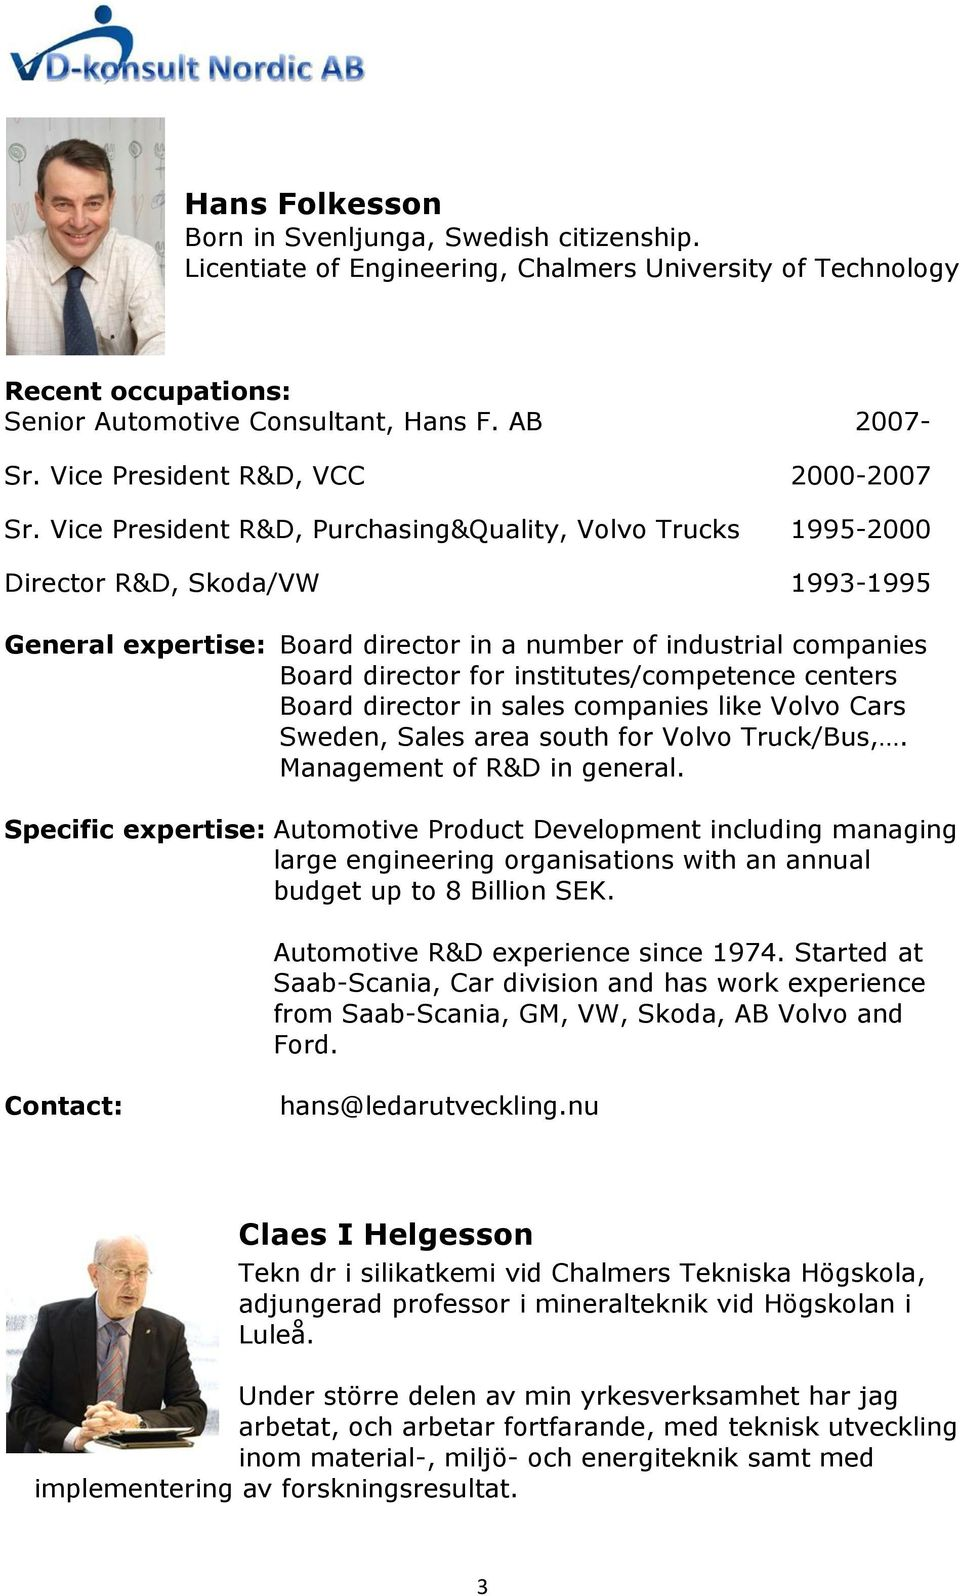 Vice President R&D, Purchasing&Quality, Volvo Trucks 1995-2000 Director R&D, Skoda/VW 1993-1995 General expertise: Board director in a number of industrial companies Board director for